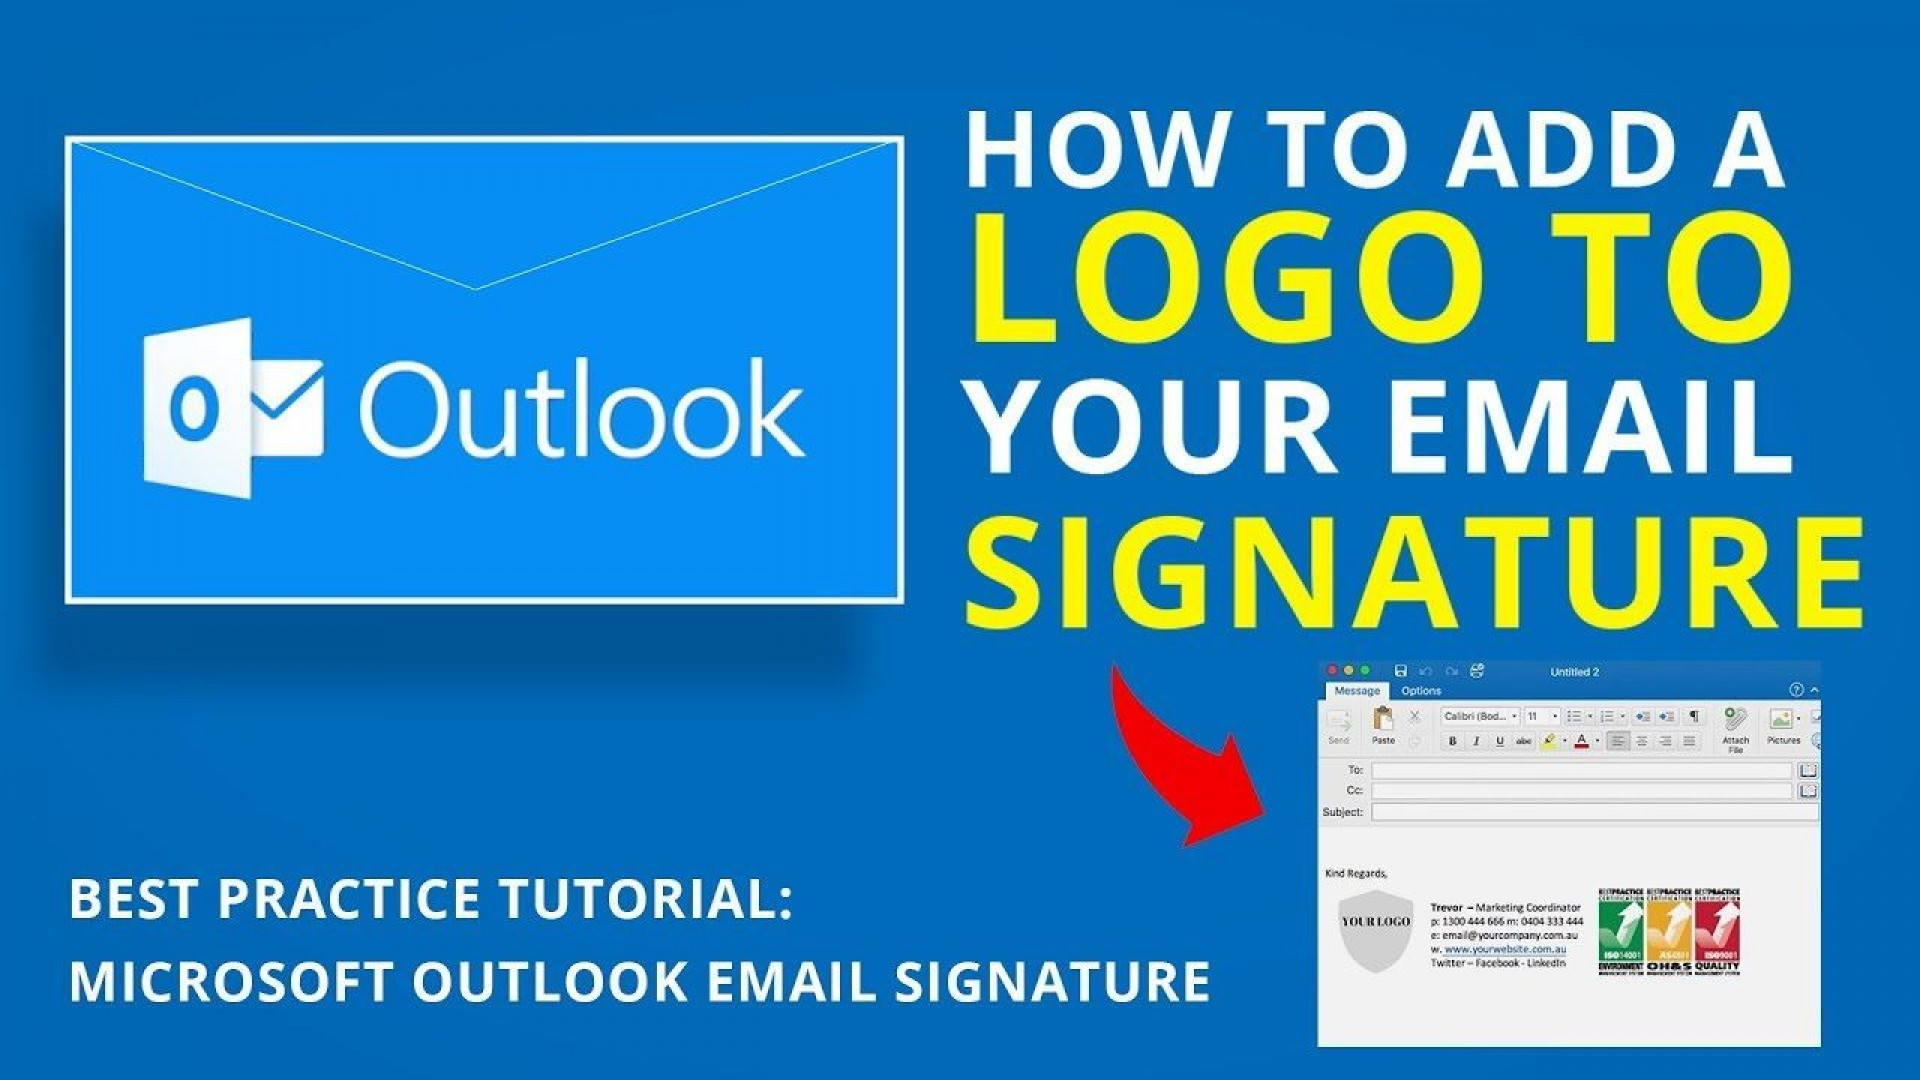 004 Best Email Signature Format For Outlook Inspiration  Example Template Microsoft1920